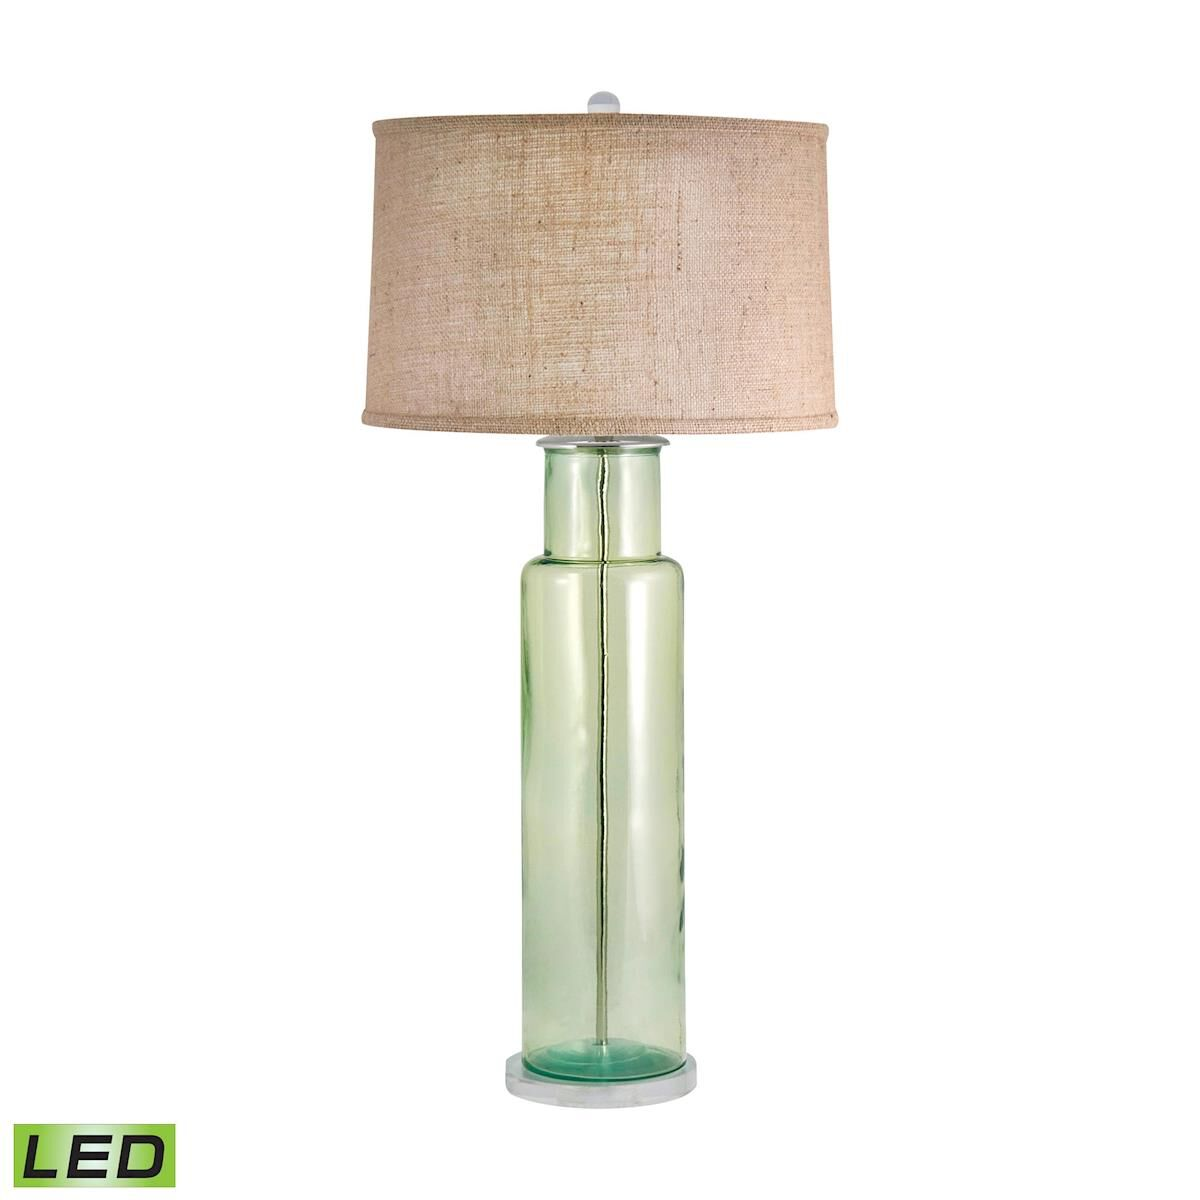 Dimond Lighting 30 Inch Table Lamp - 216G-LED - Traditional